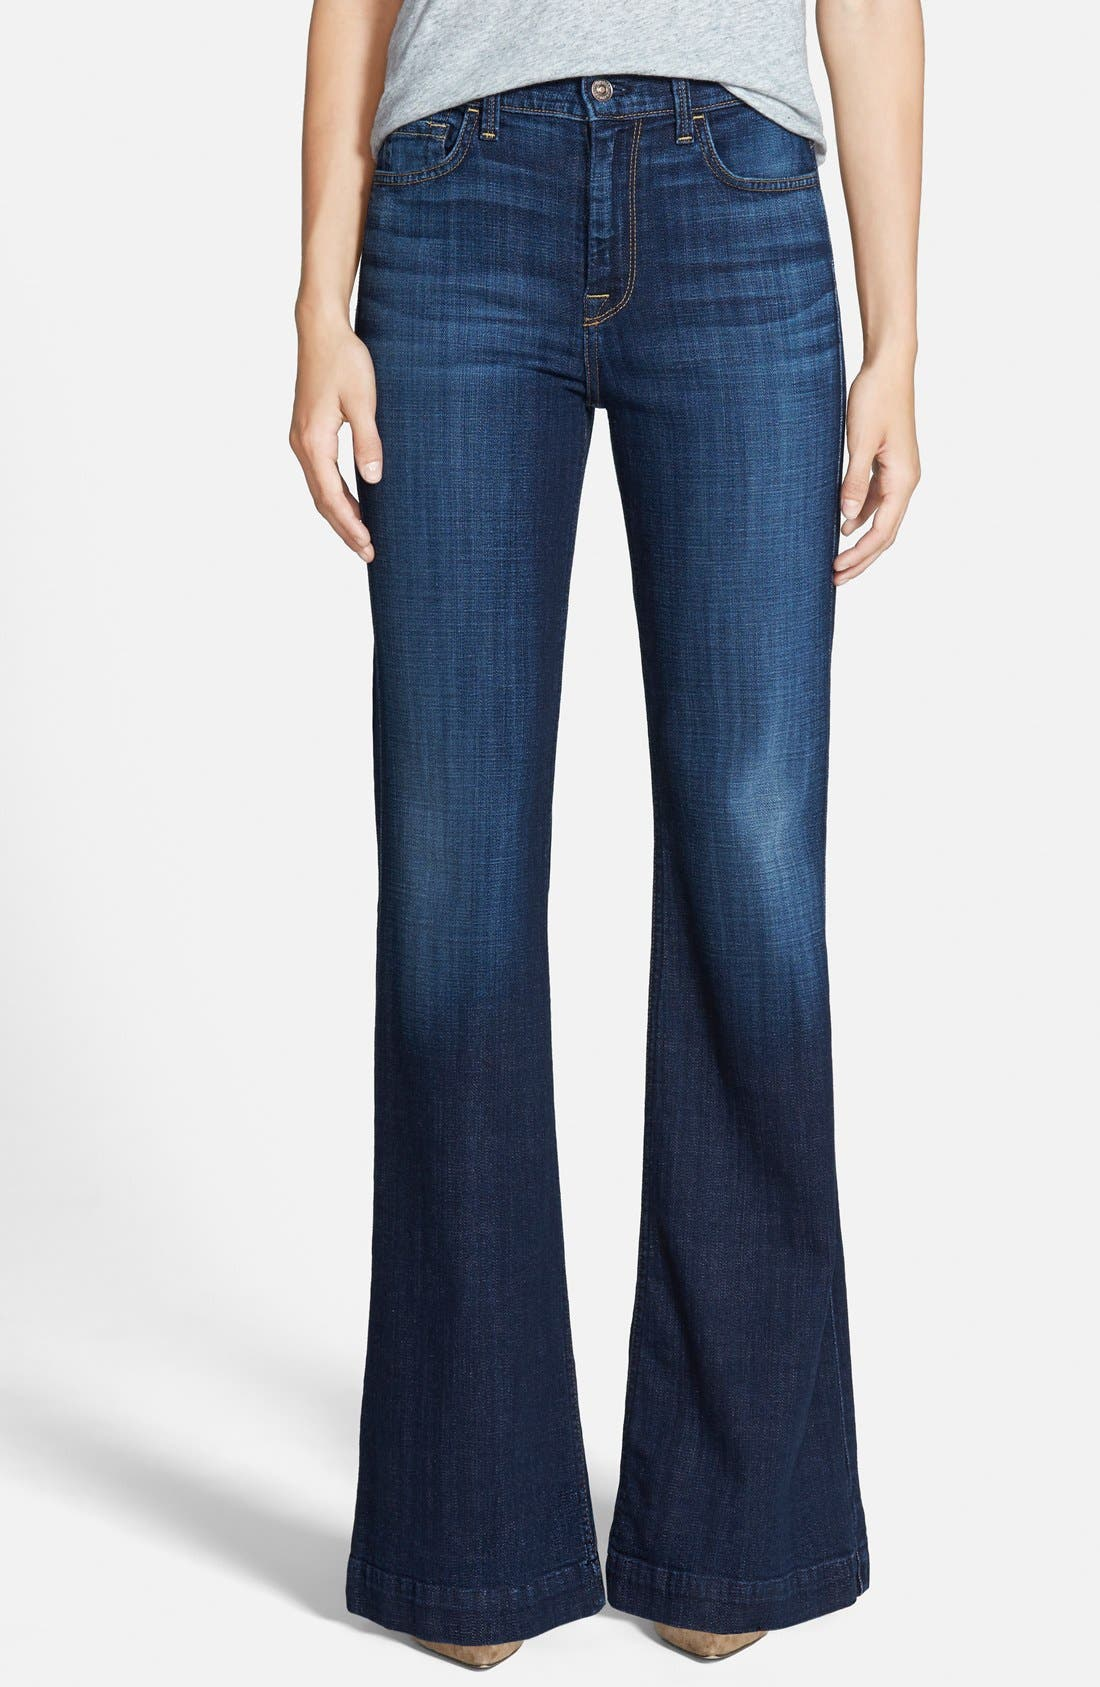 Alternate Image 1 Selected - 7 For All Mankind® 'Ginger' High Rise Flare Jeans (Royal Broken Twill)